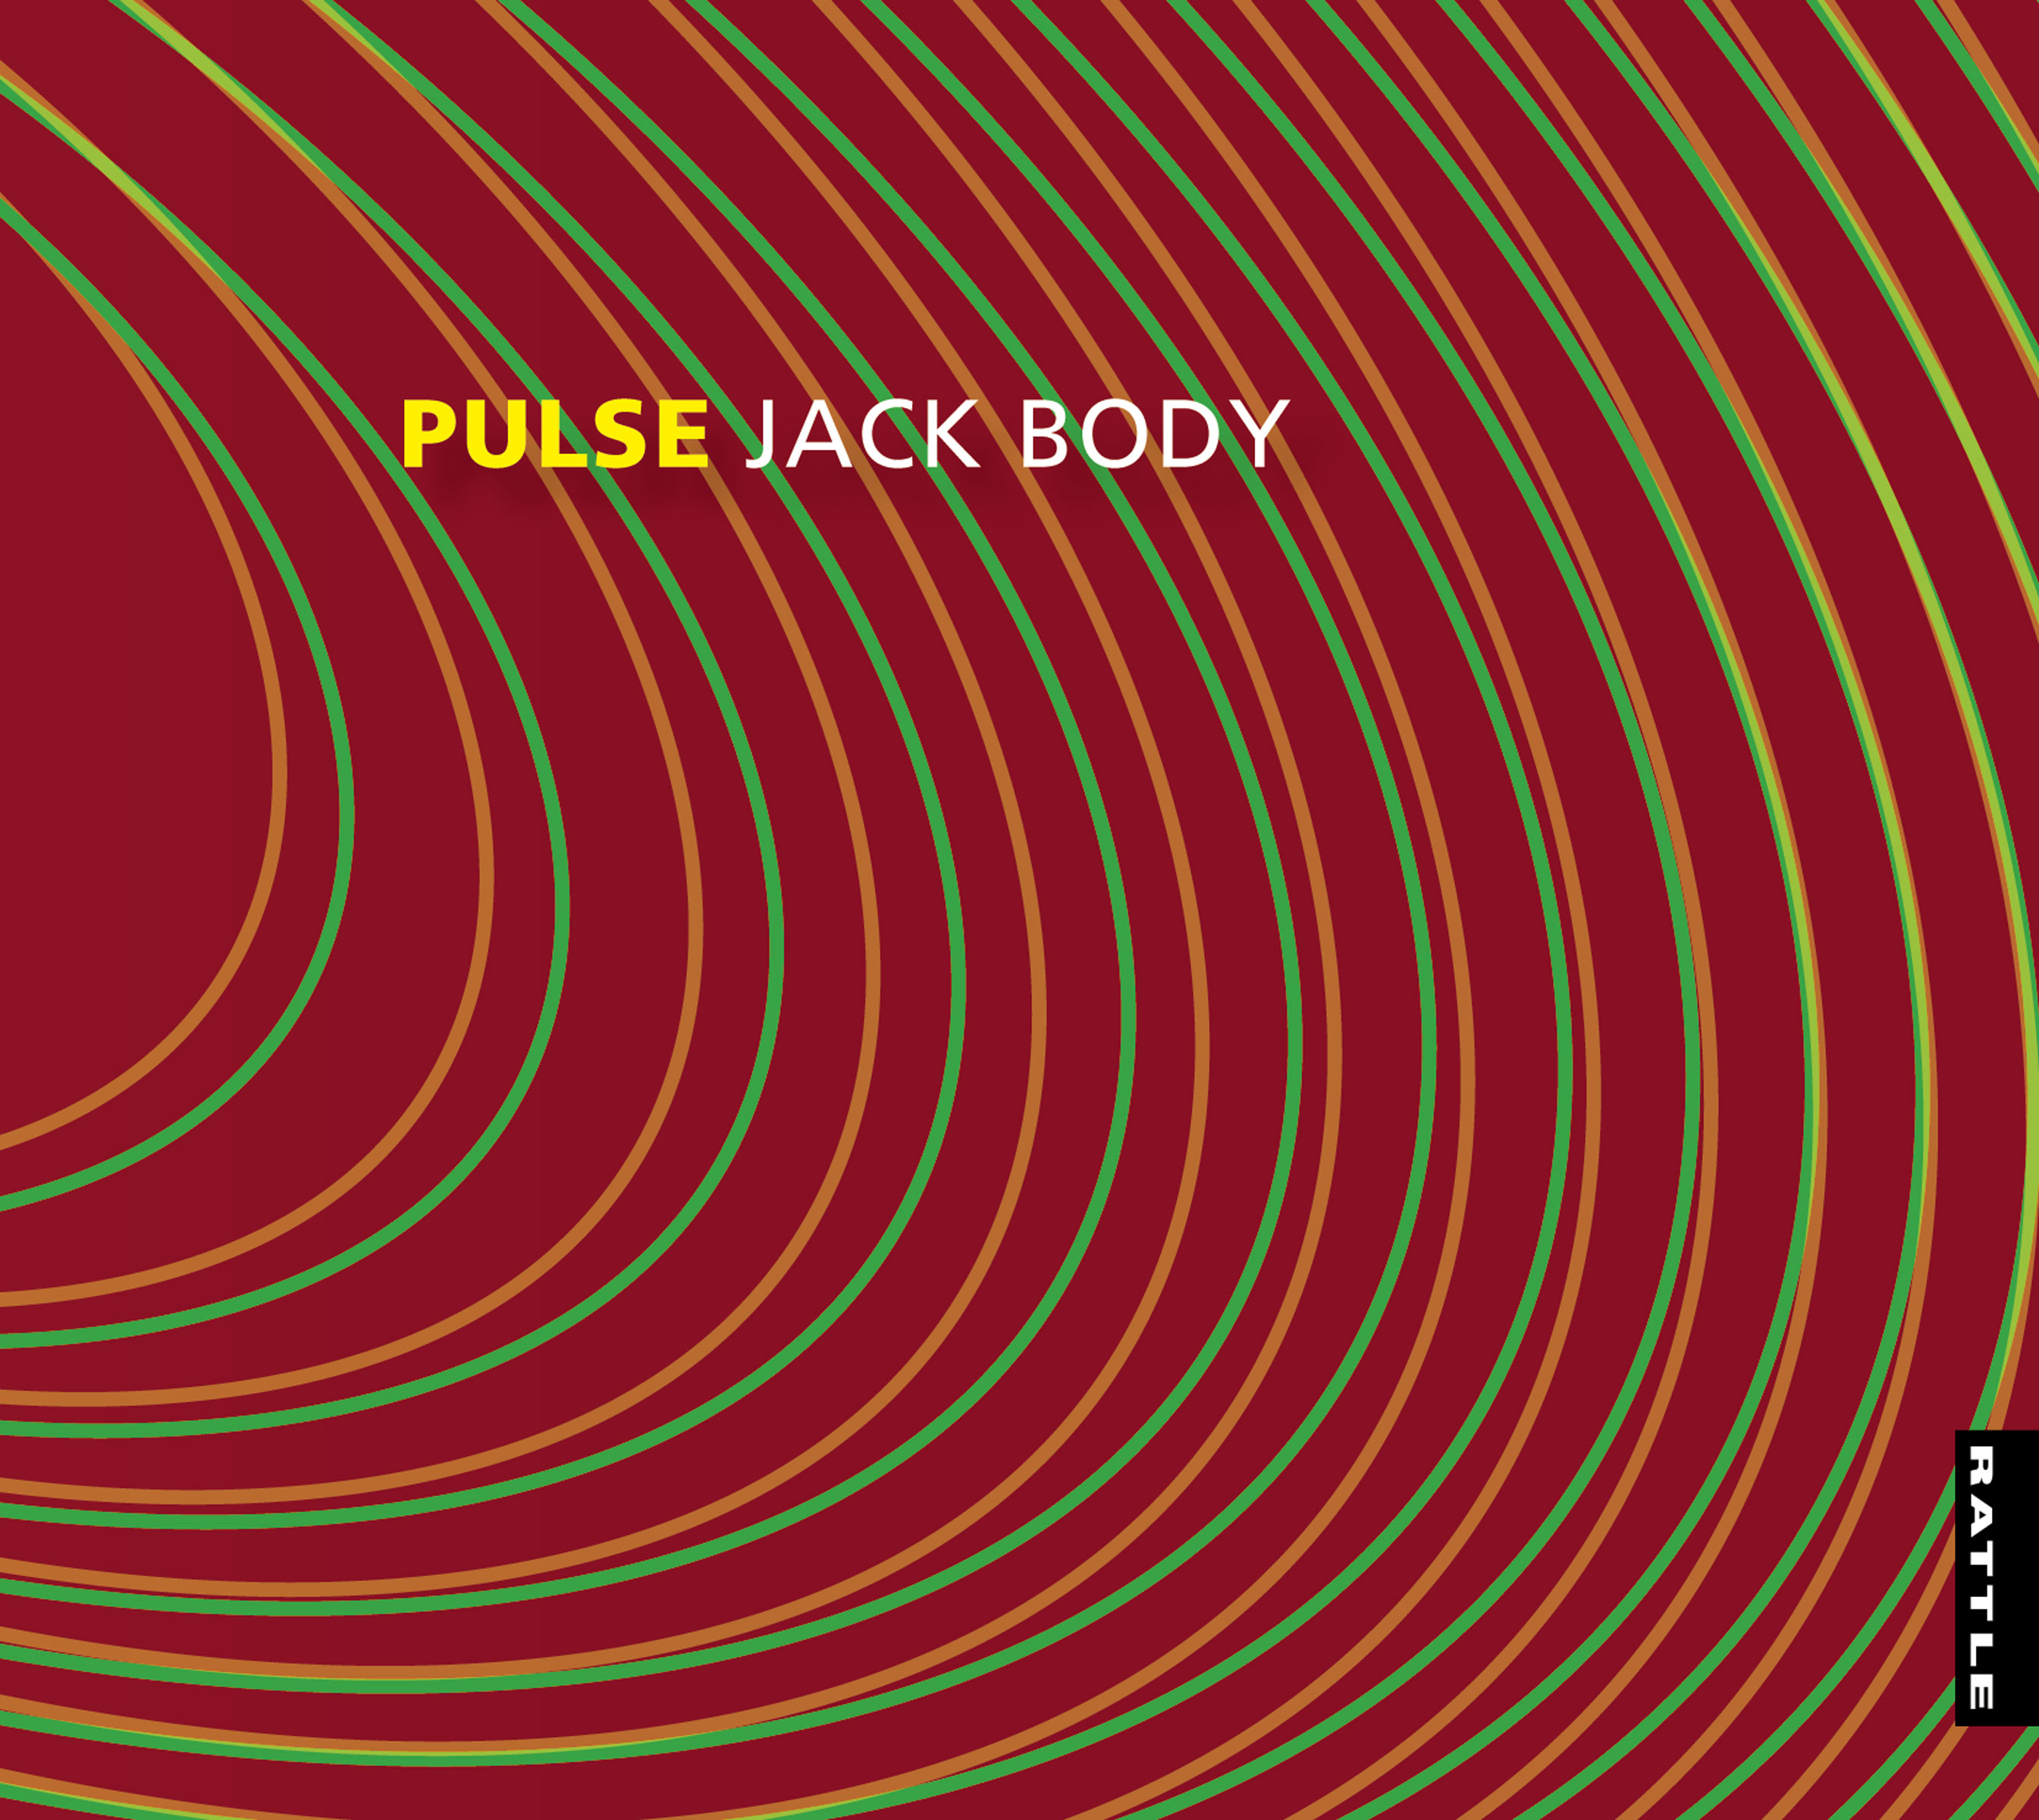 Jack Body | Pulse - downloadable MP3 ALBUM